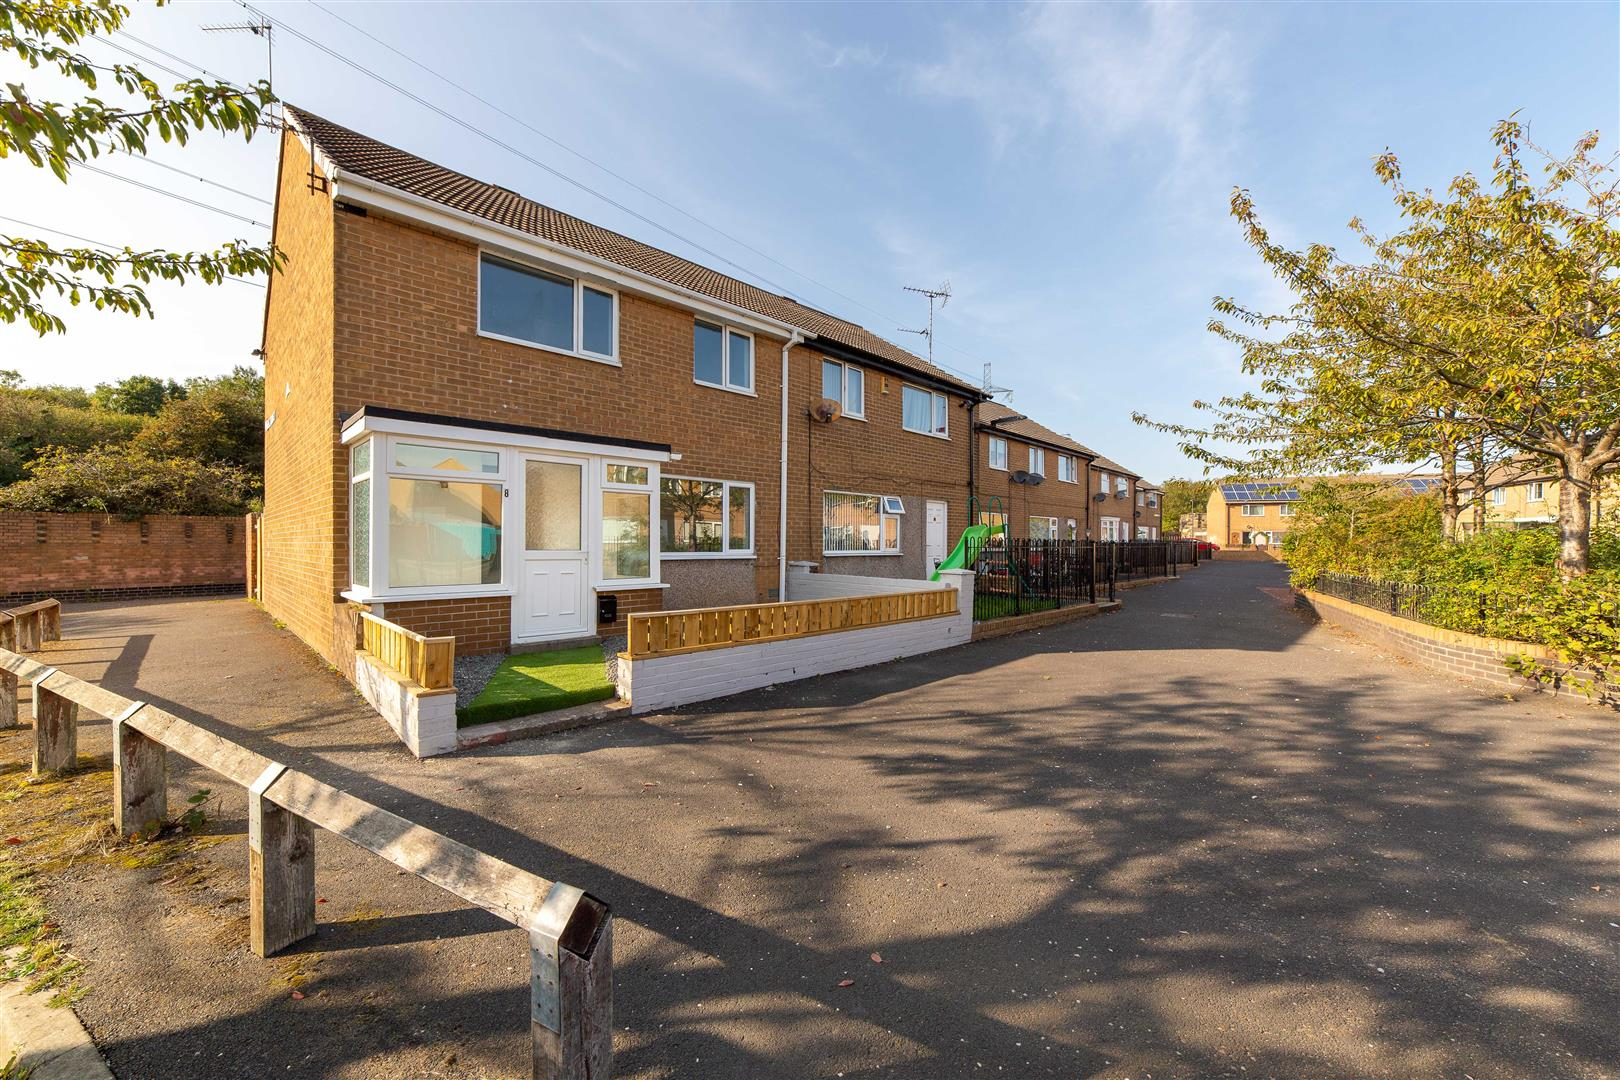 3 bed end of terrace house for sale in North Shields, NE29 6JN 0